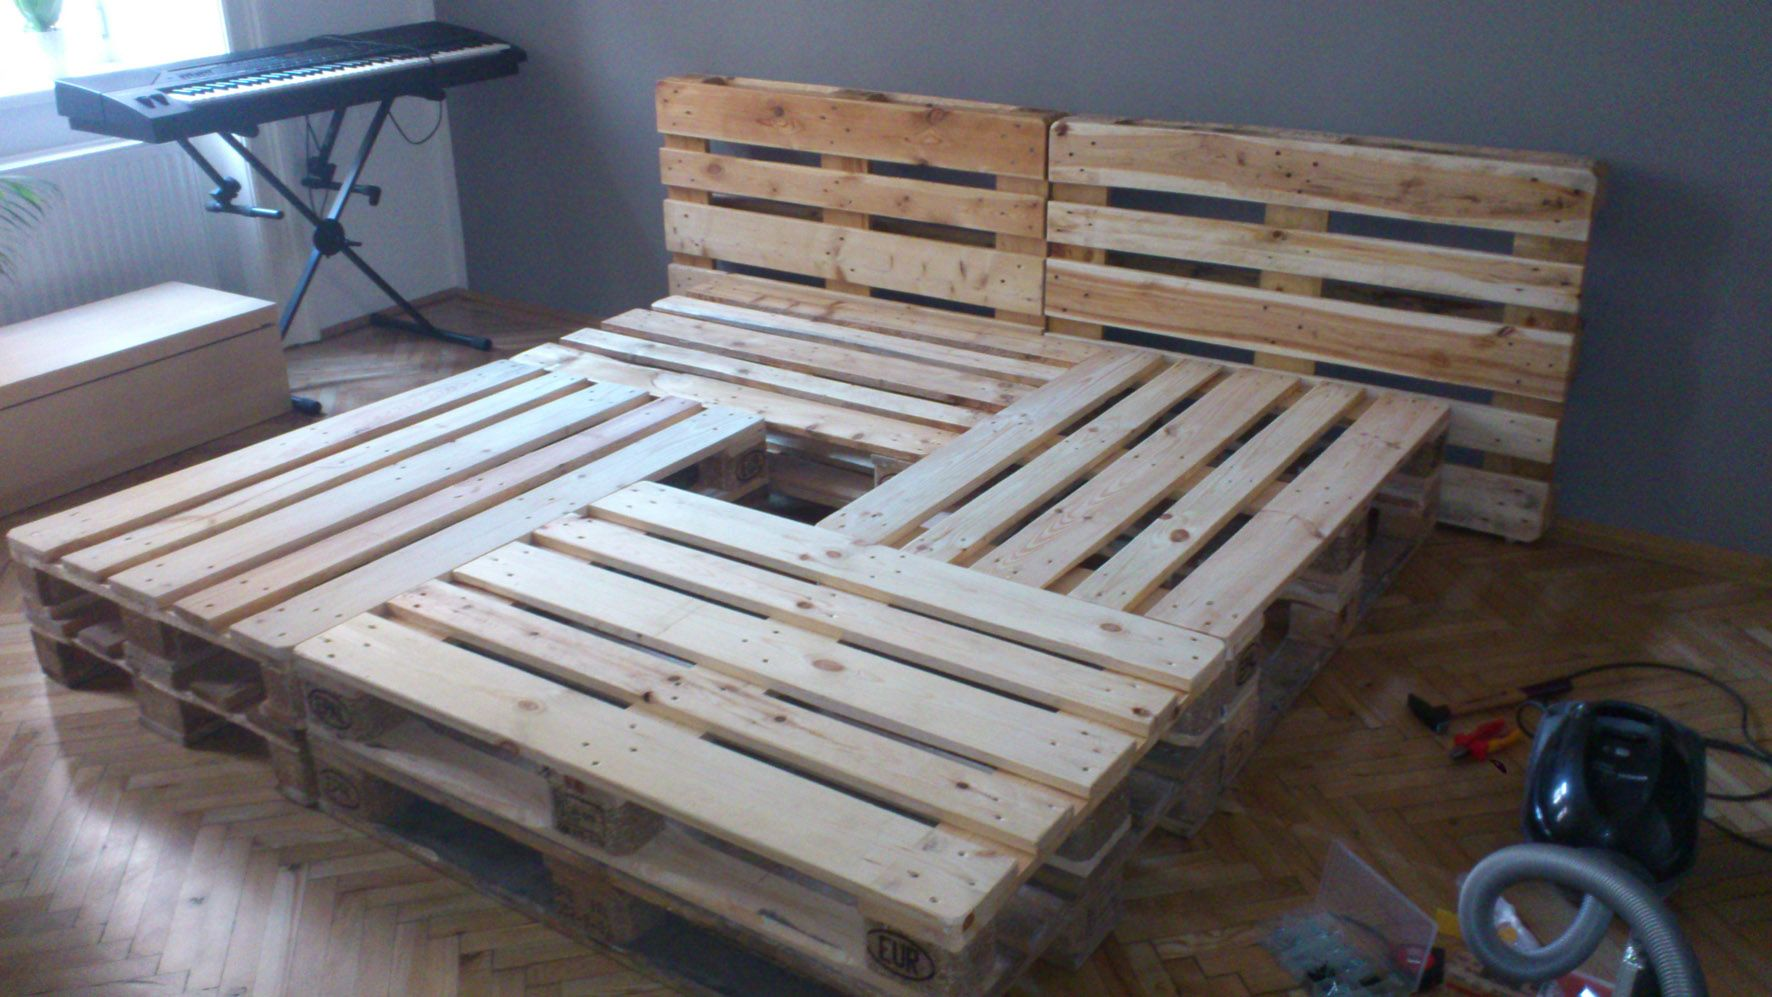 Exceptionnel Himbeerblues: DIY: Paletten Bett U0026 Merry Christmas | Alles | Pinterest |  Merry, Pallets And Room Decor